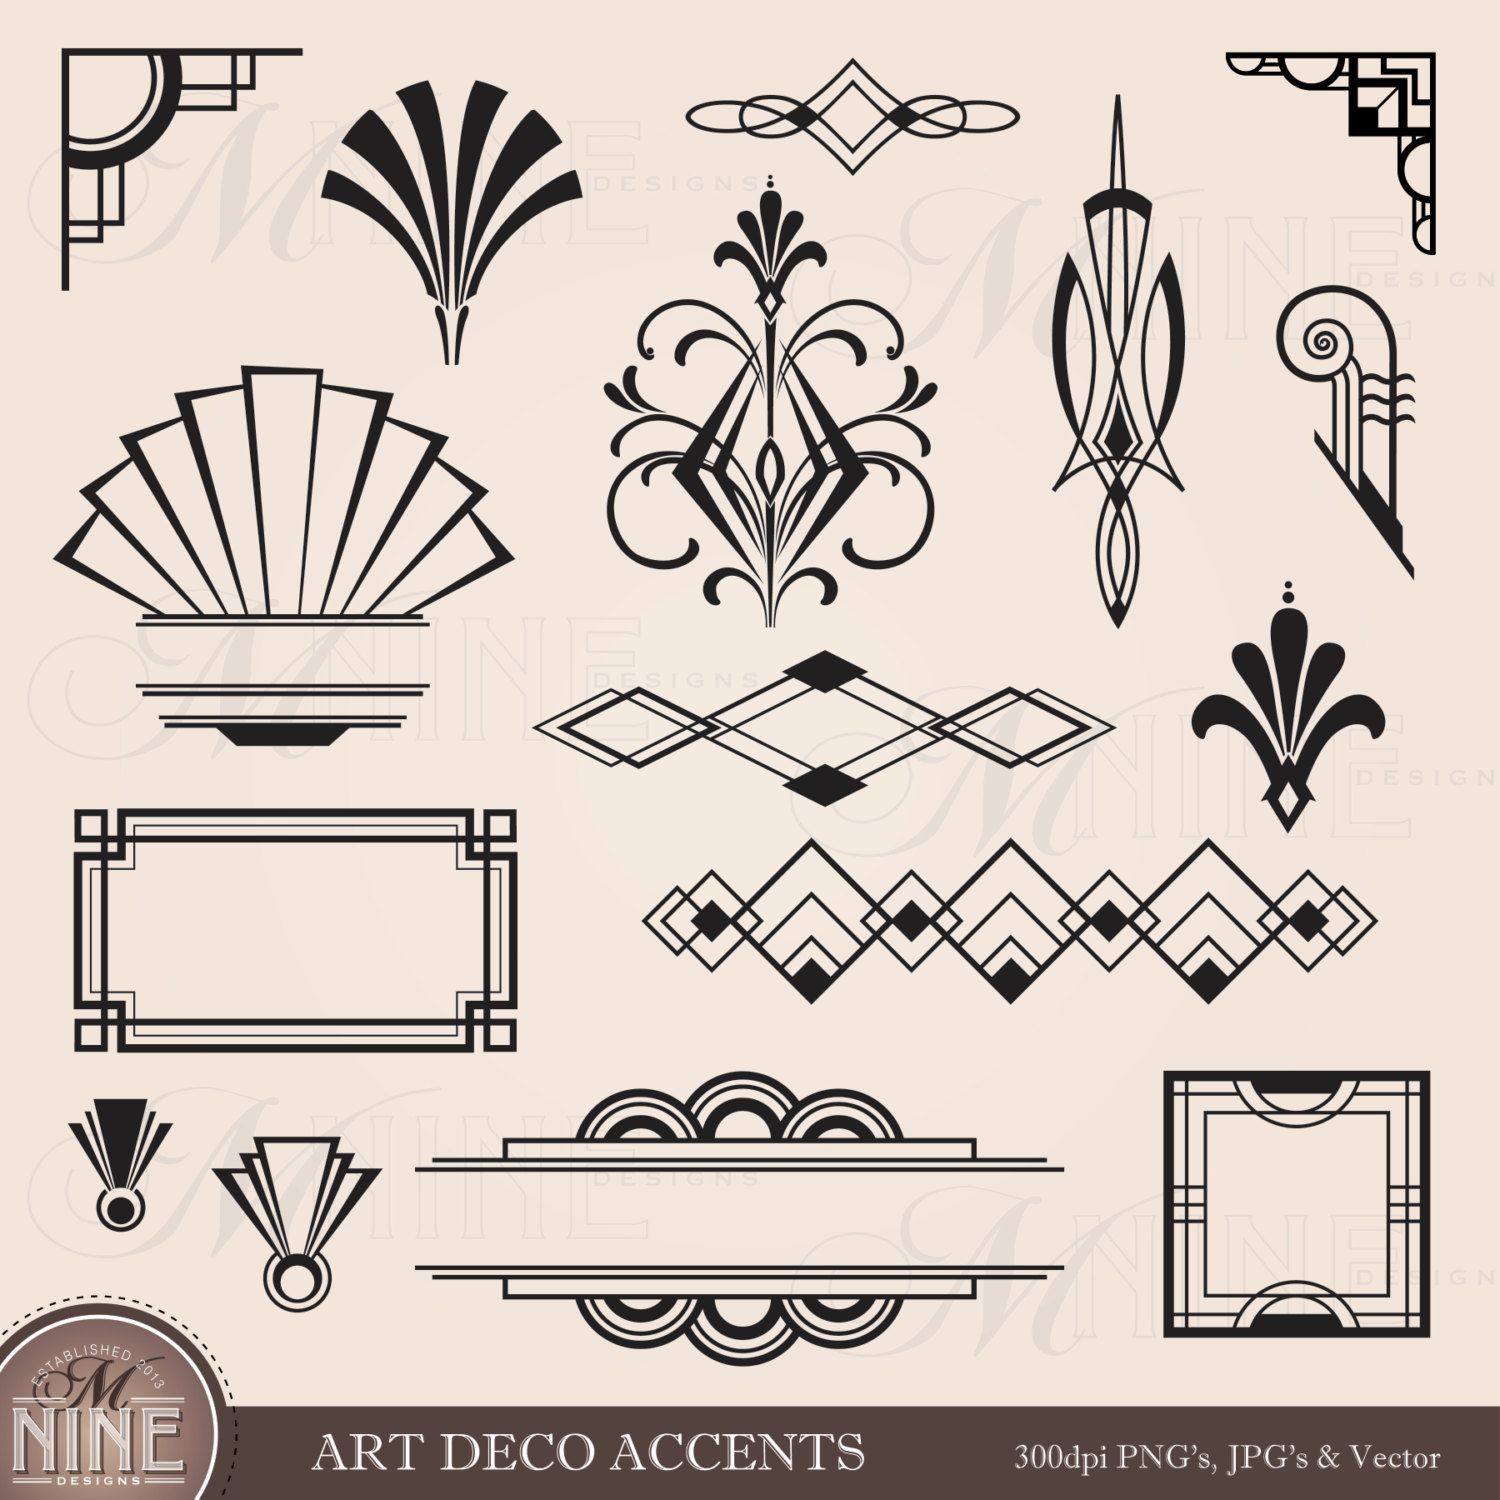 digital clipart art deco design elements frames borders flourishes instant download vintage frames antique clip art black silhouette